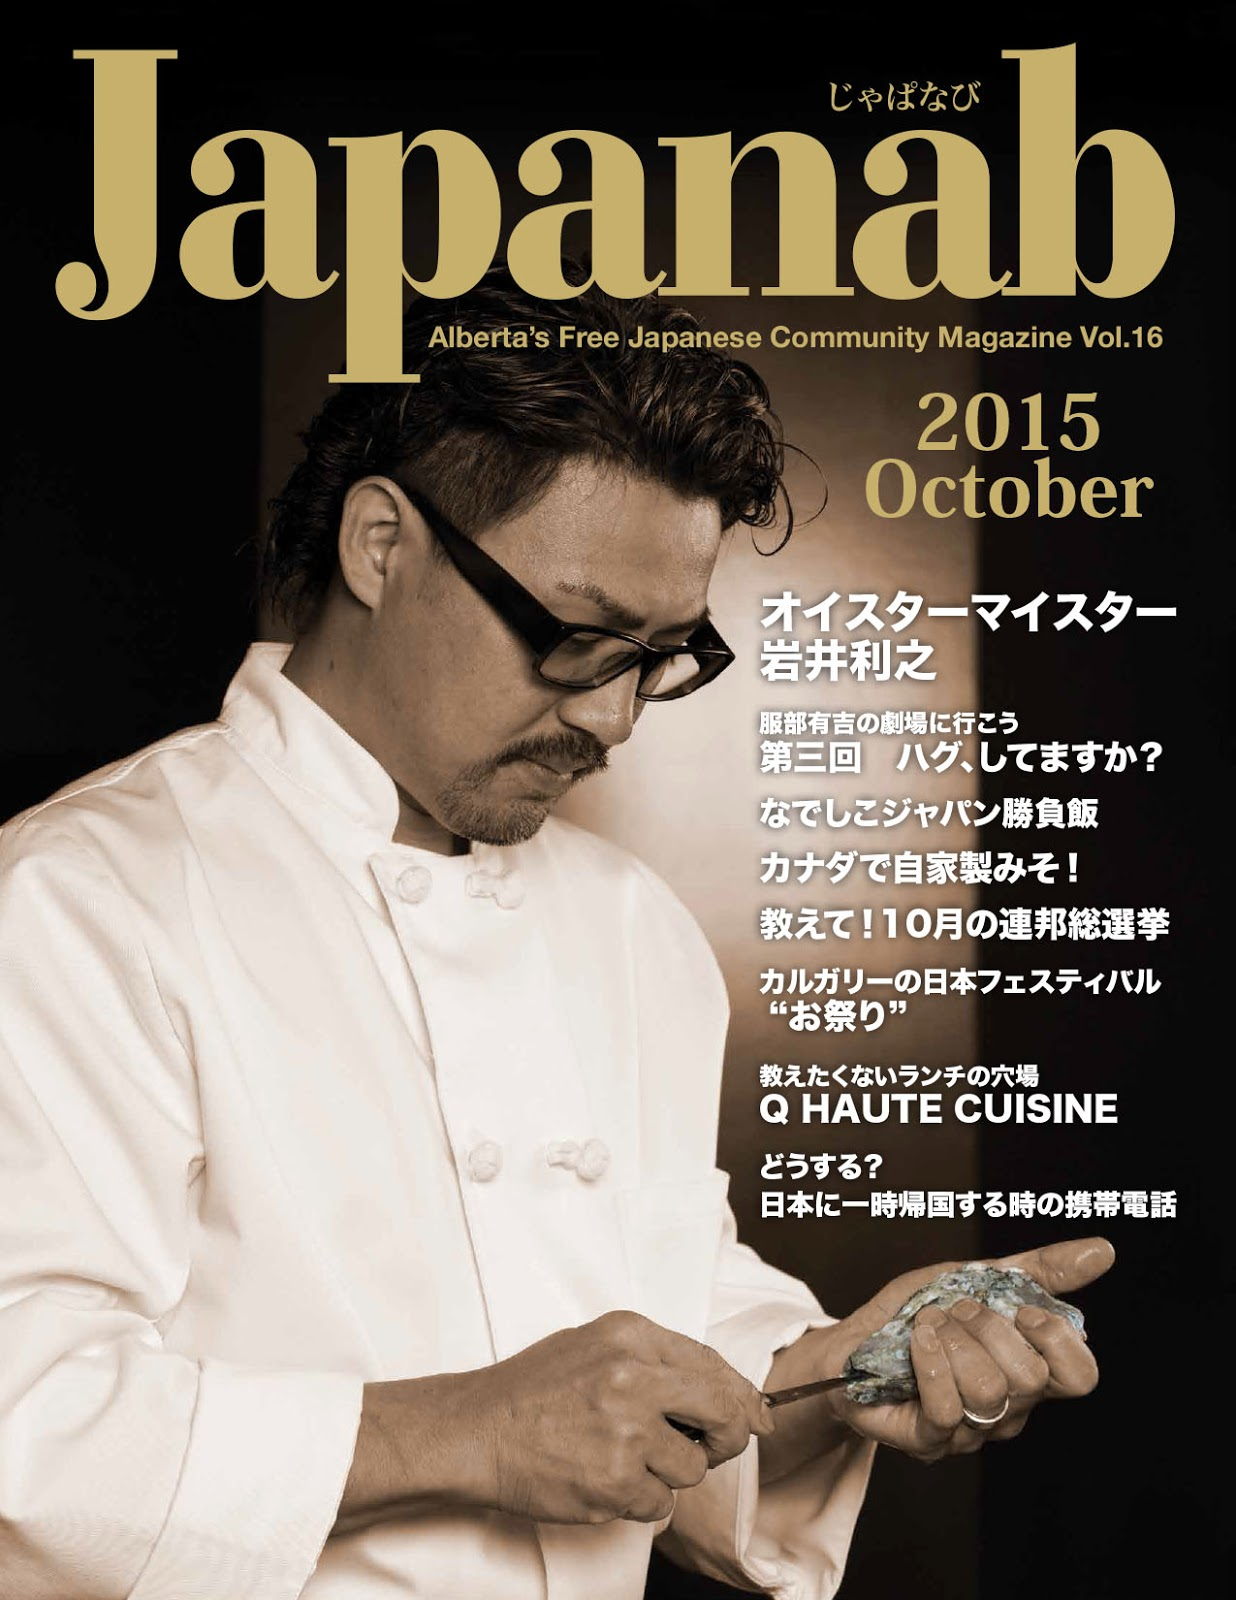 Japanab Vol. 16 - 2015 October